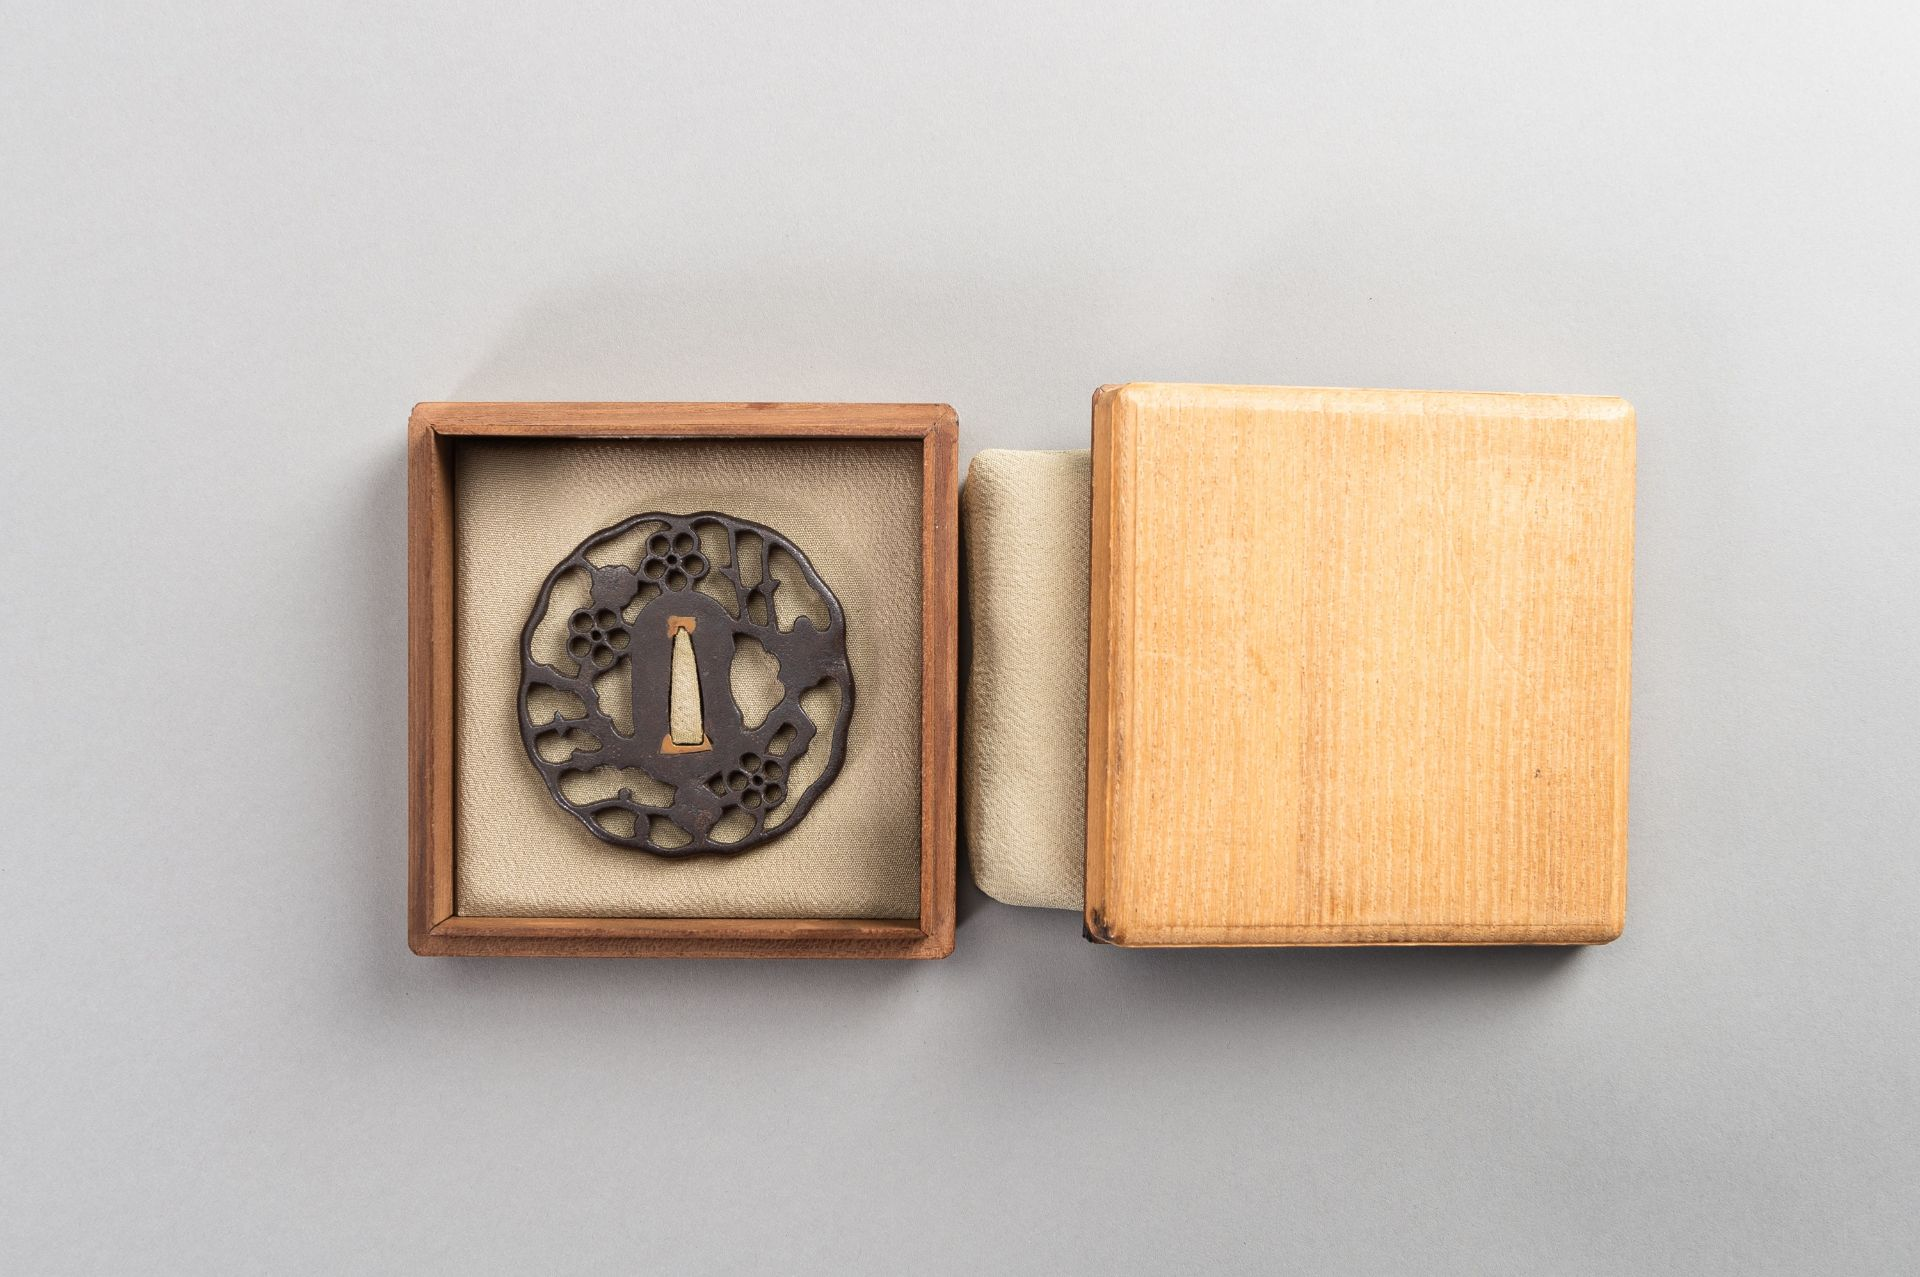 AN IRON SUKASHI-TSUBA WITH FLOWERS AND CLOUDS - Image 7 of 7